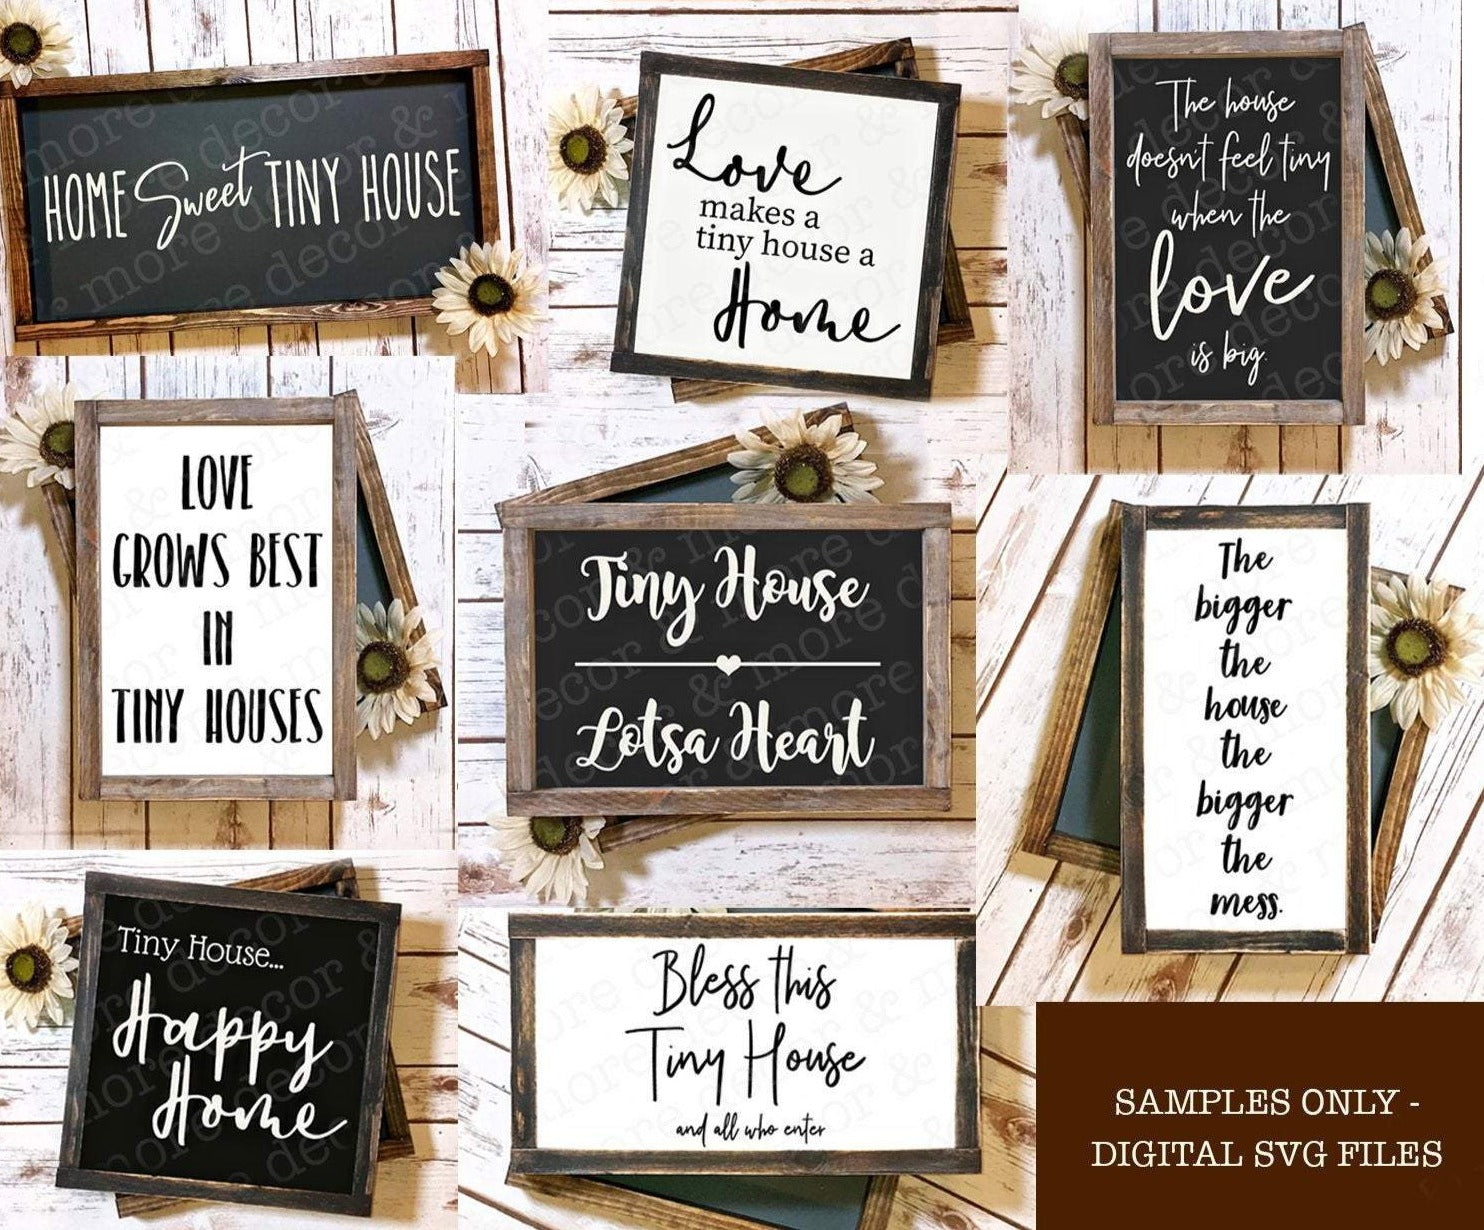 Tiny House Quote SVG Files, Tiny House SVG File Bundle, Housewarming Gifts for Tiny Houses, Tiny House Wood Sign SVG Files for Cricut